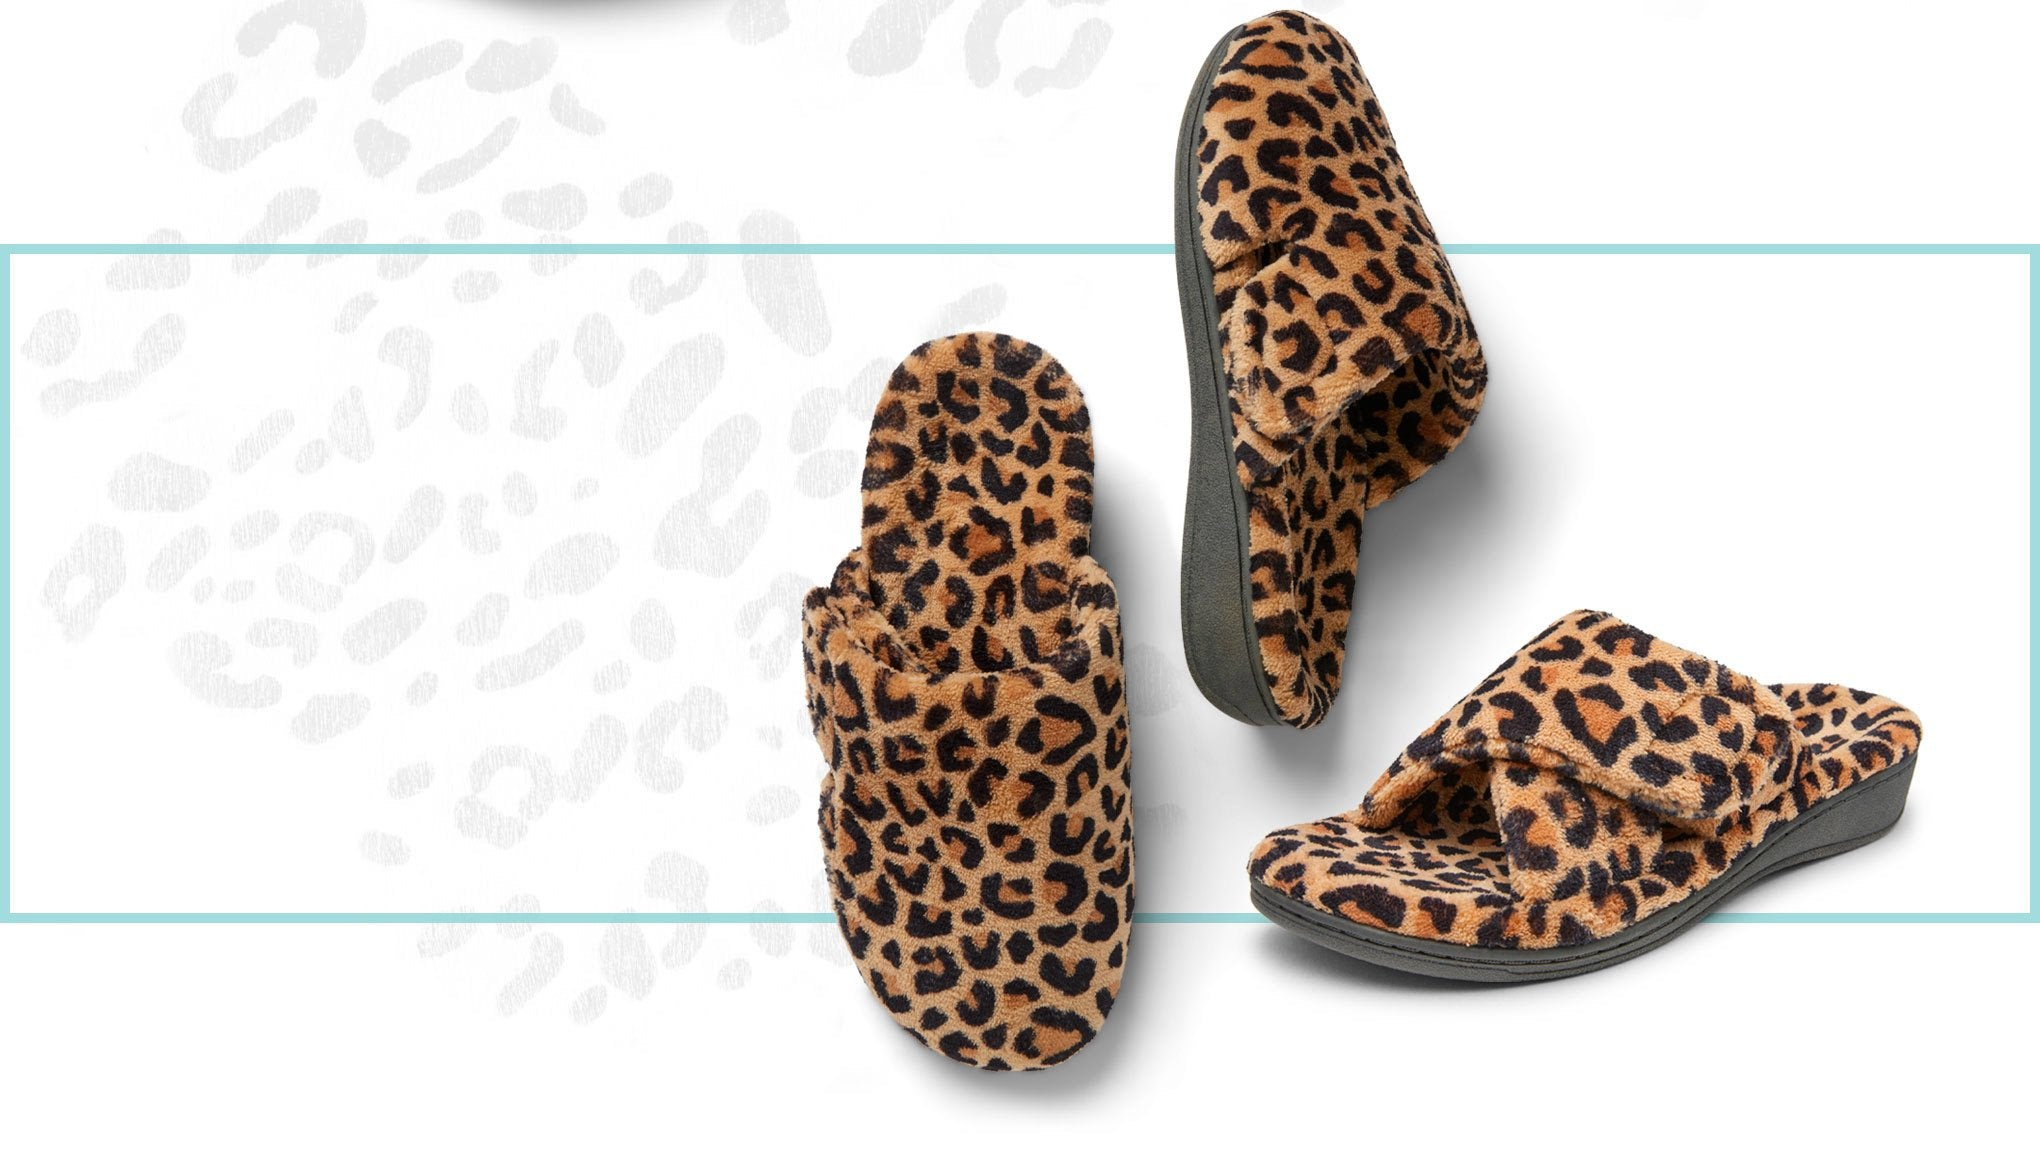 Leave Behind the Jungle - Shop Women's Slippers